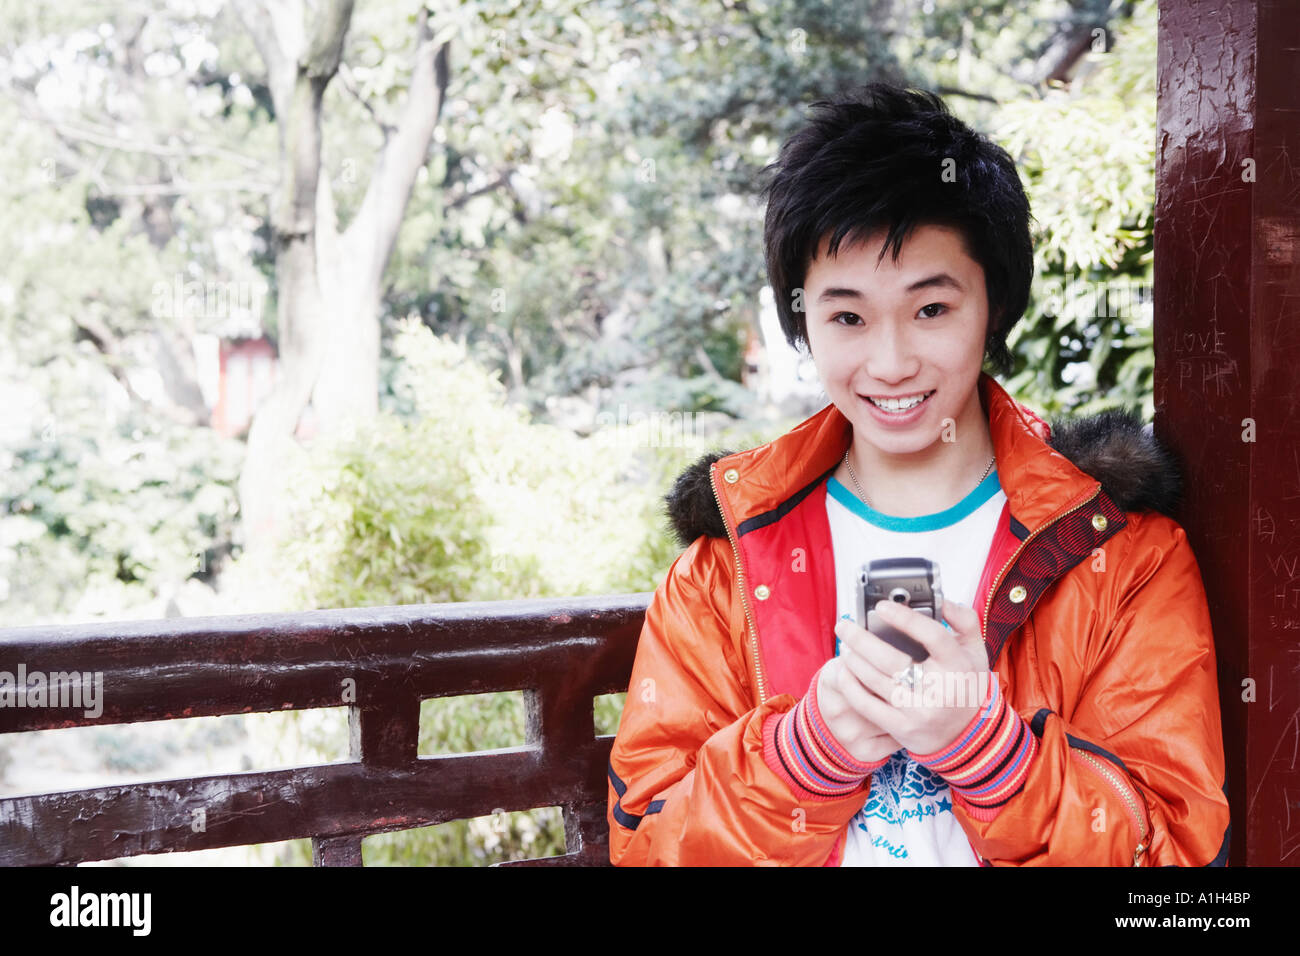 Portrait of a teenage boy holding a mobile phone smiling - Stock Image